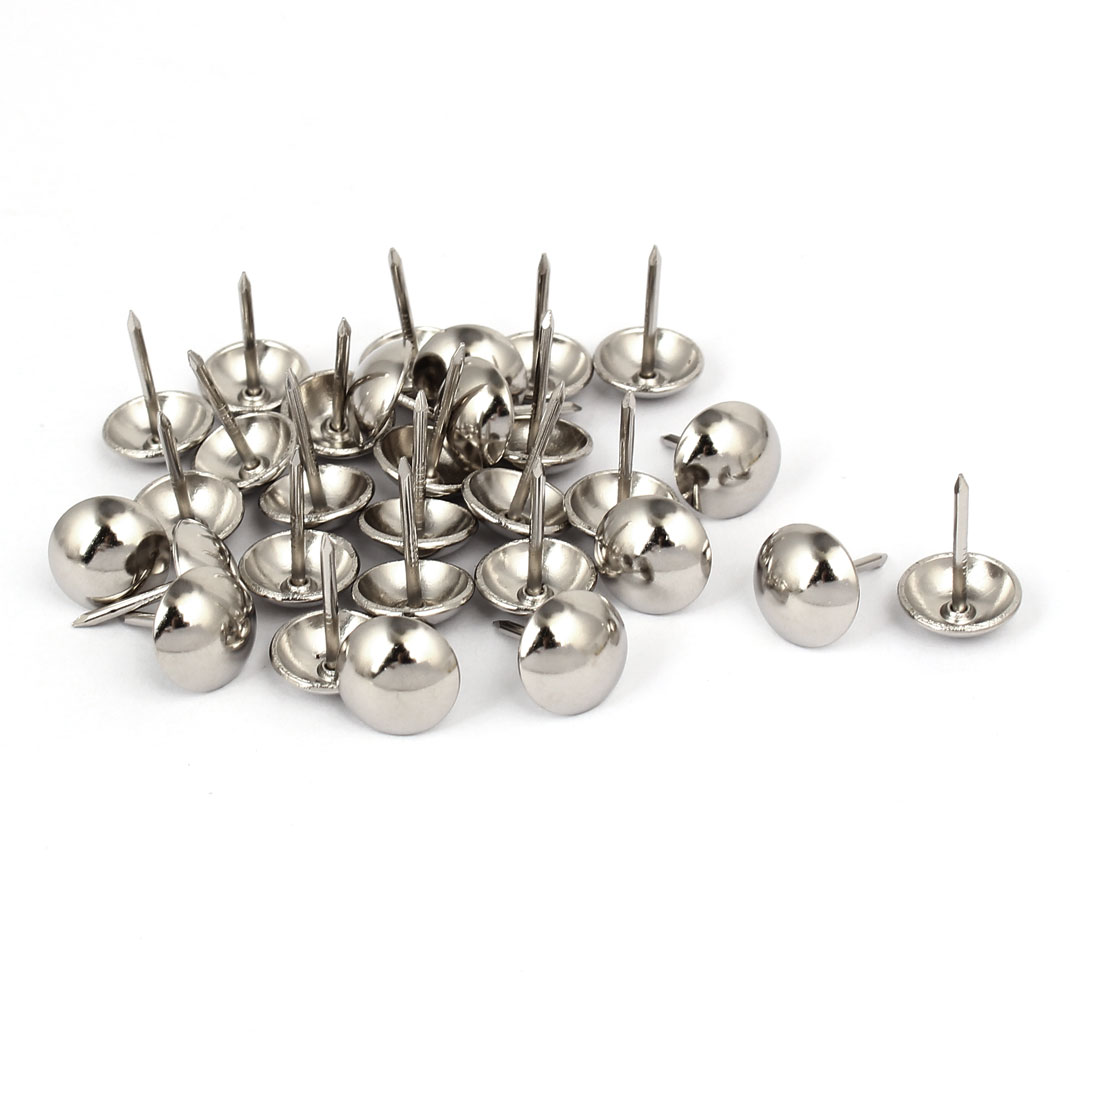 12mm Head Dia 17mm Height Upholstery Nail Thumb Tacks Push Pin Silver Tone 30pcs